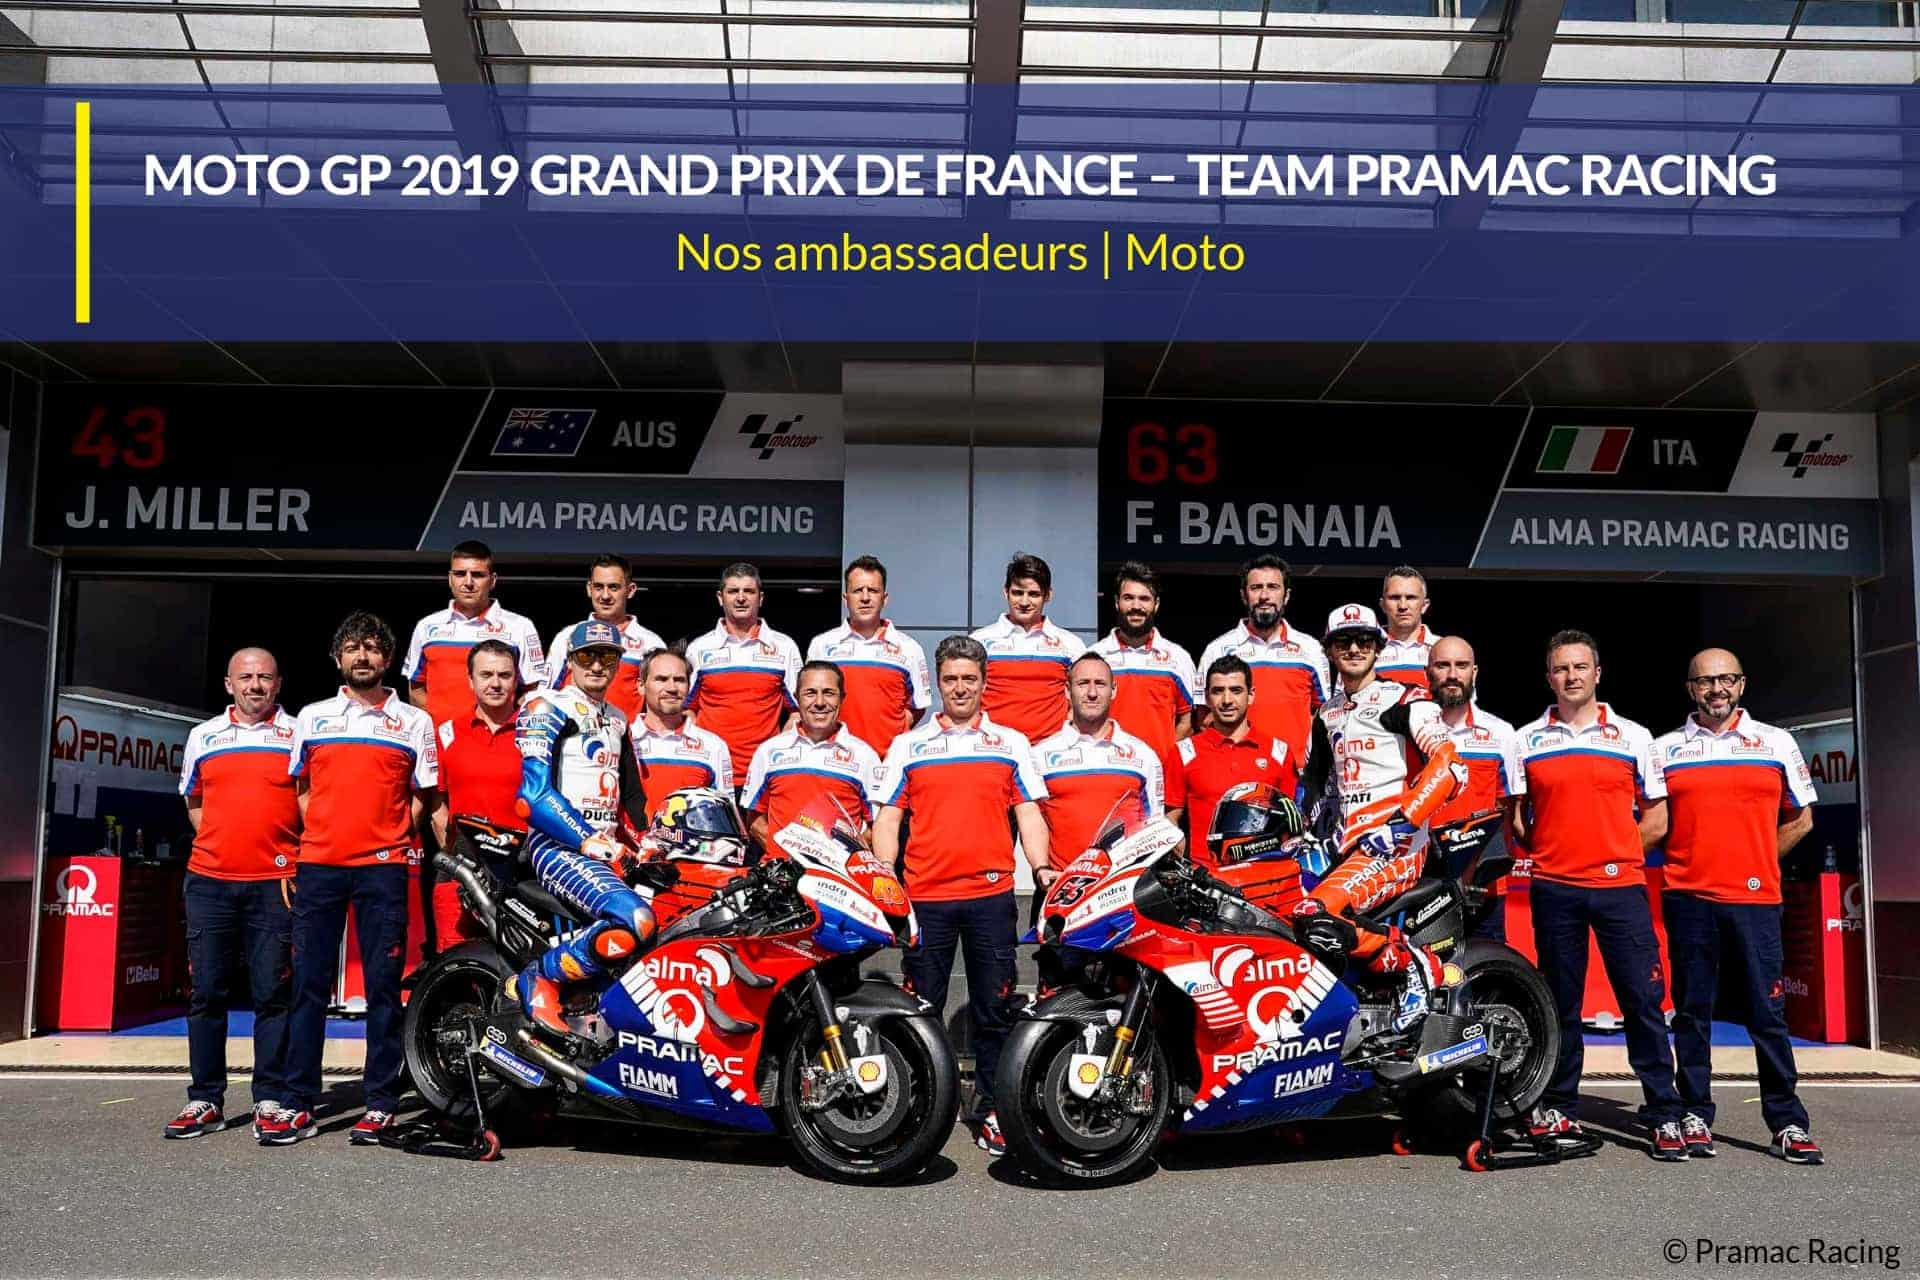 moto gp 19 team pramac racing